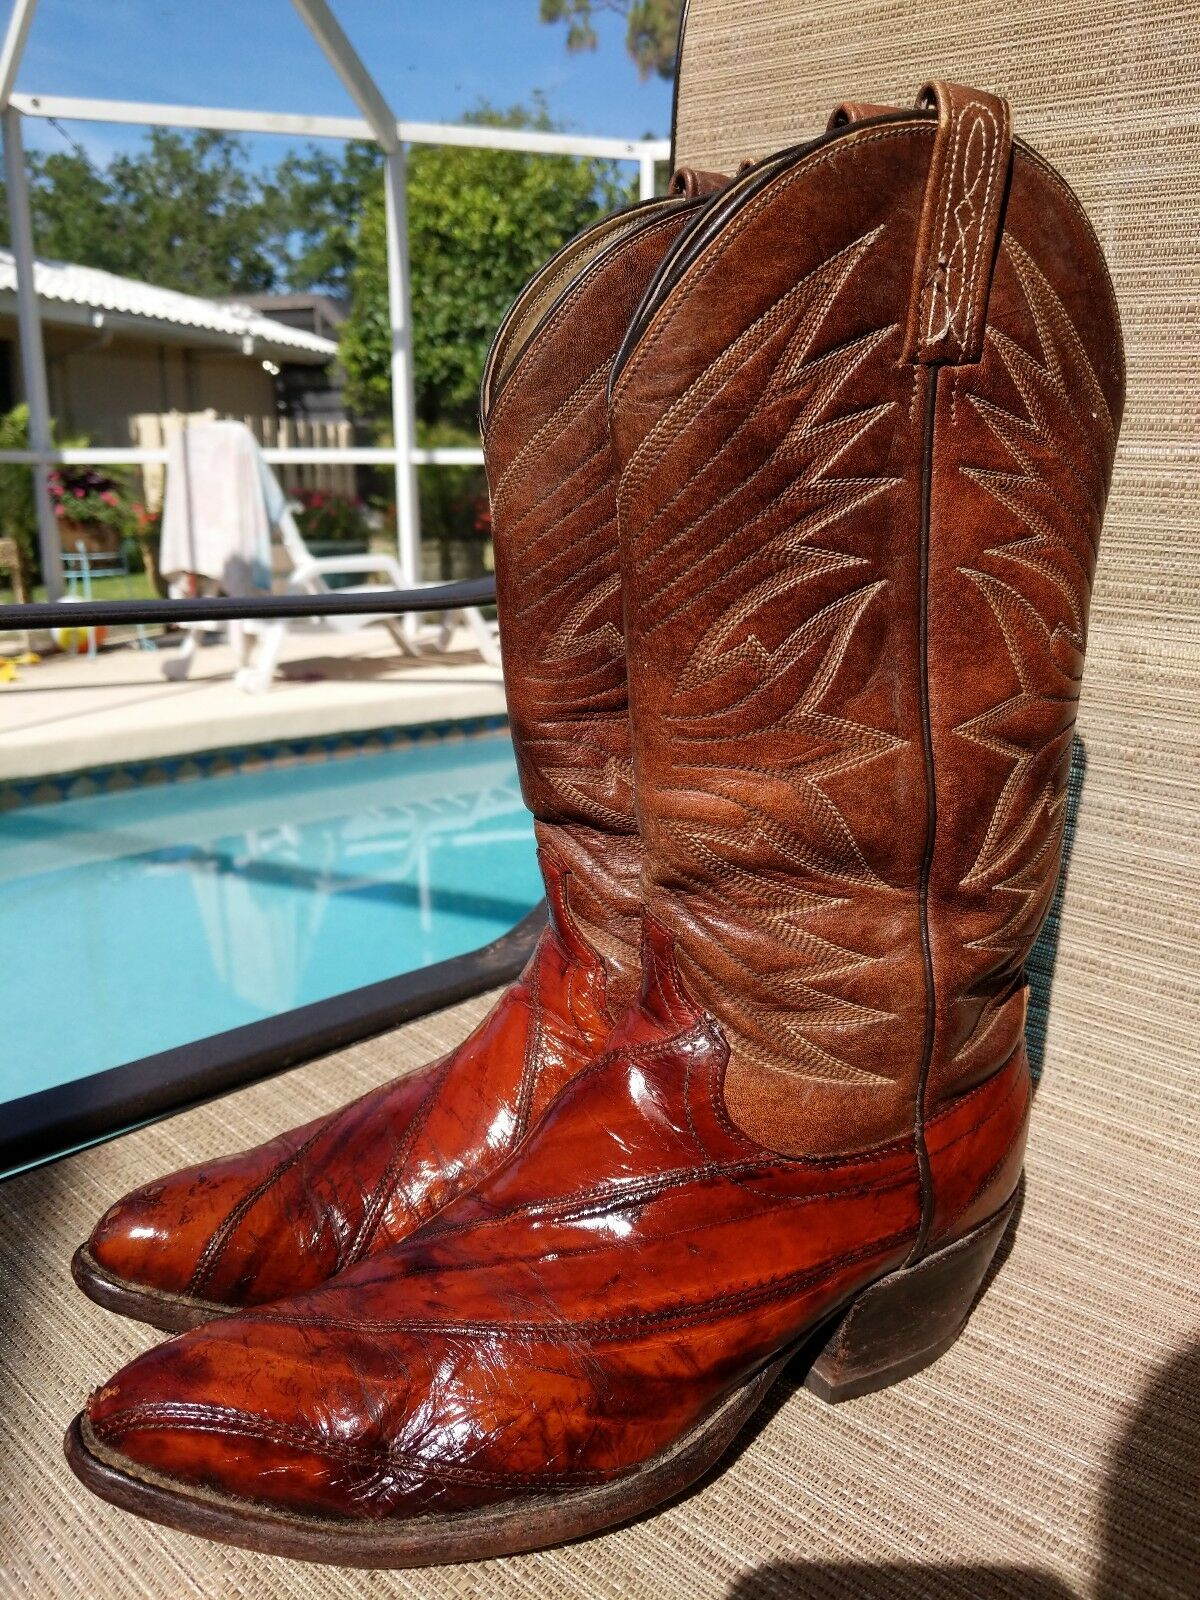 952eb64fa11 dan post Eel skin cowboy boots mens 9 D brown leather usa western vintage  glossy • $85.00